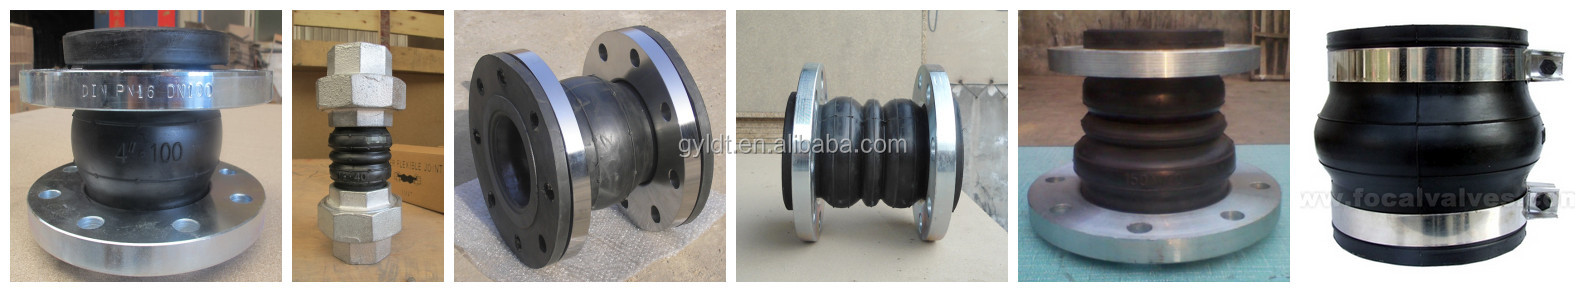 DIN/ANSI Flanged Rubber Pipe Joint